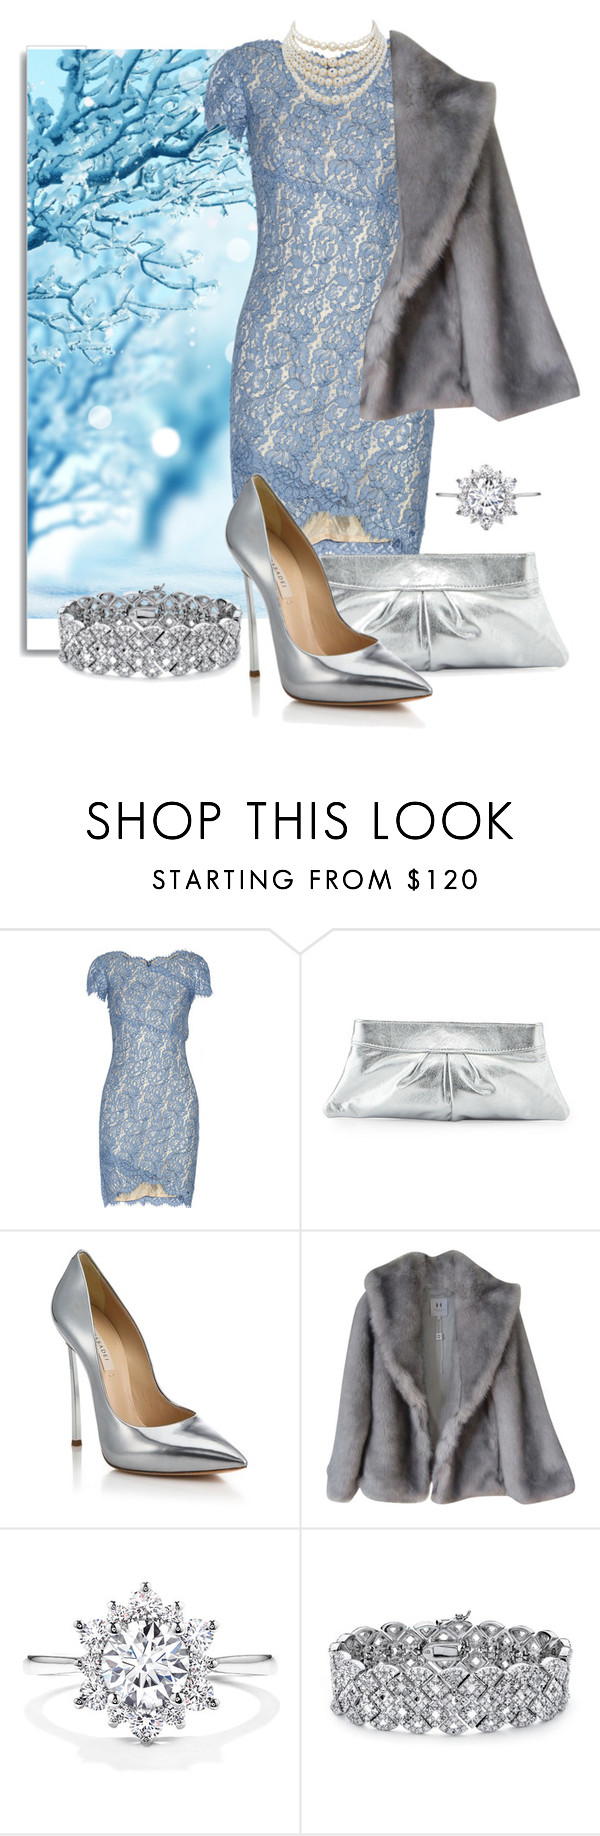 """Snow light"" by cartersplace ❤ liked on Polyvore featuring White Label, Lover, Lauren Merkin, Casadei, Halston, Palm Beach Jewelry, Christian Dior, colorchallenge, winterstyle and Christmas2015"